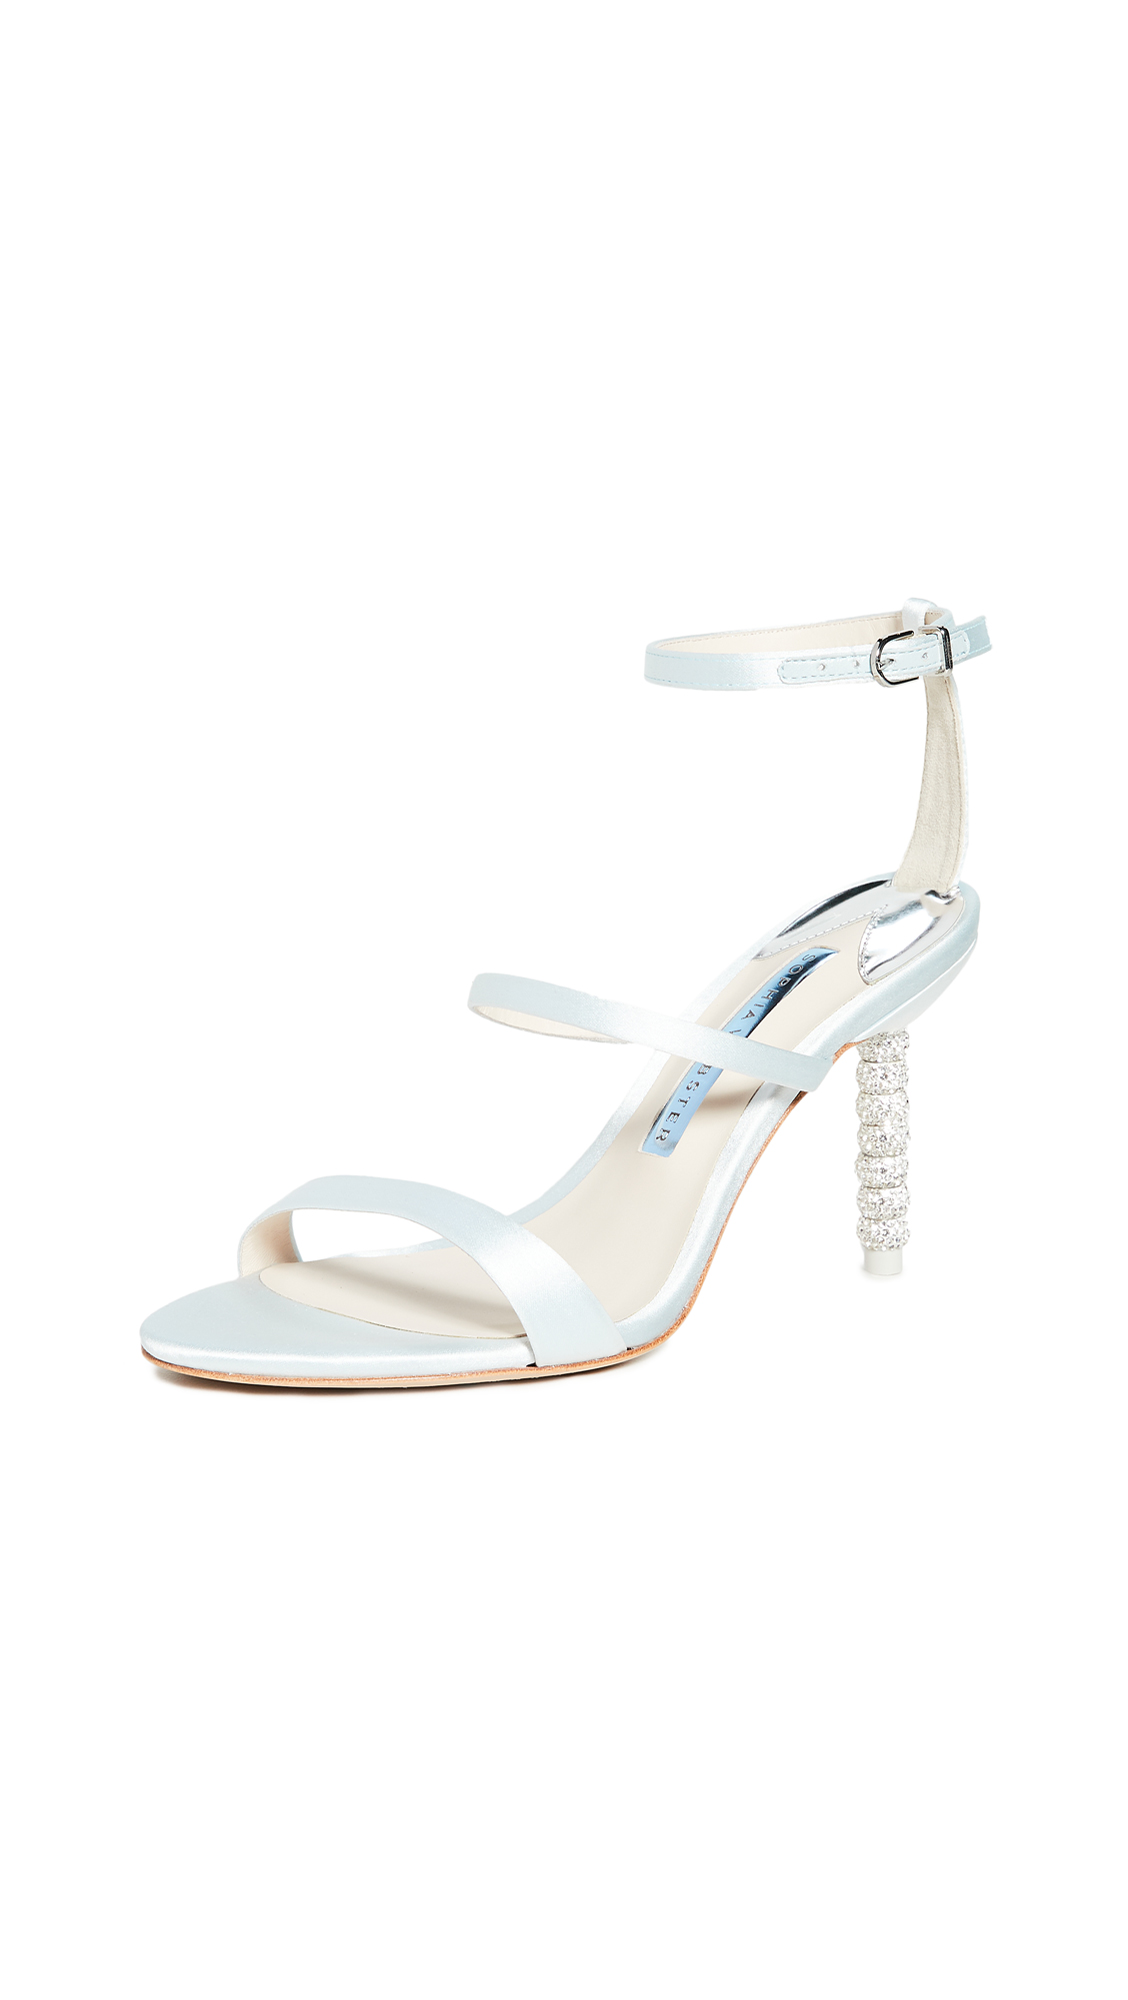 Sophia Webster Rosalind Crystal Mid Sandals - 30% Off Sale